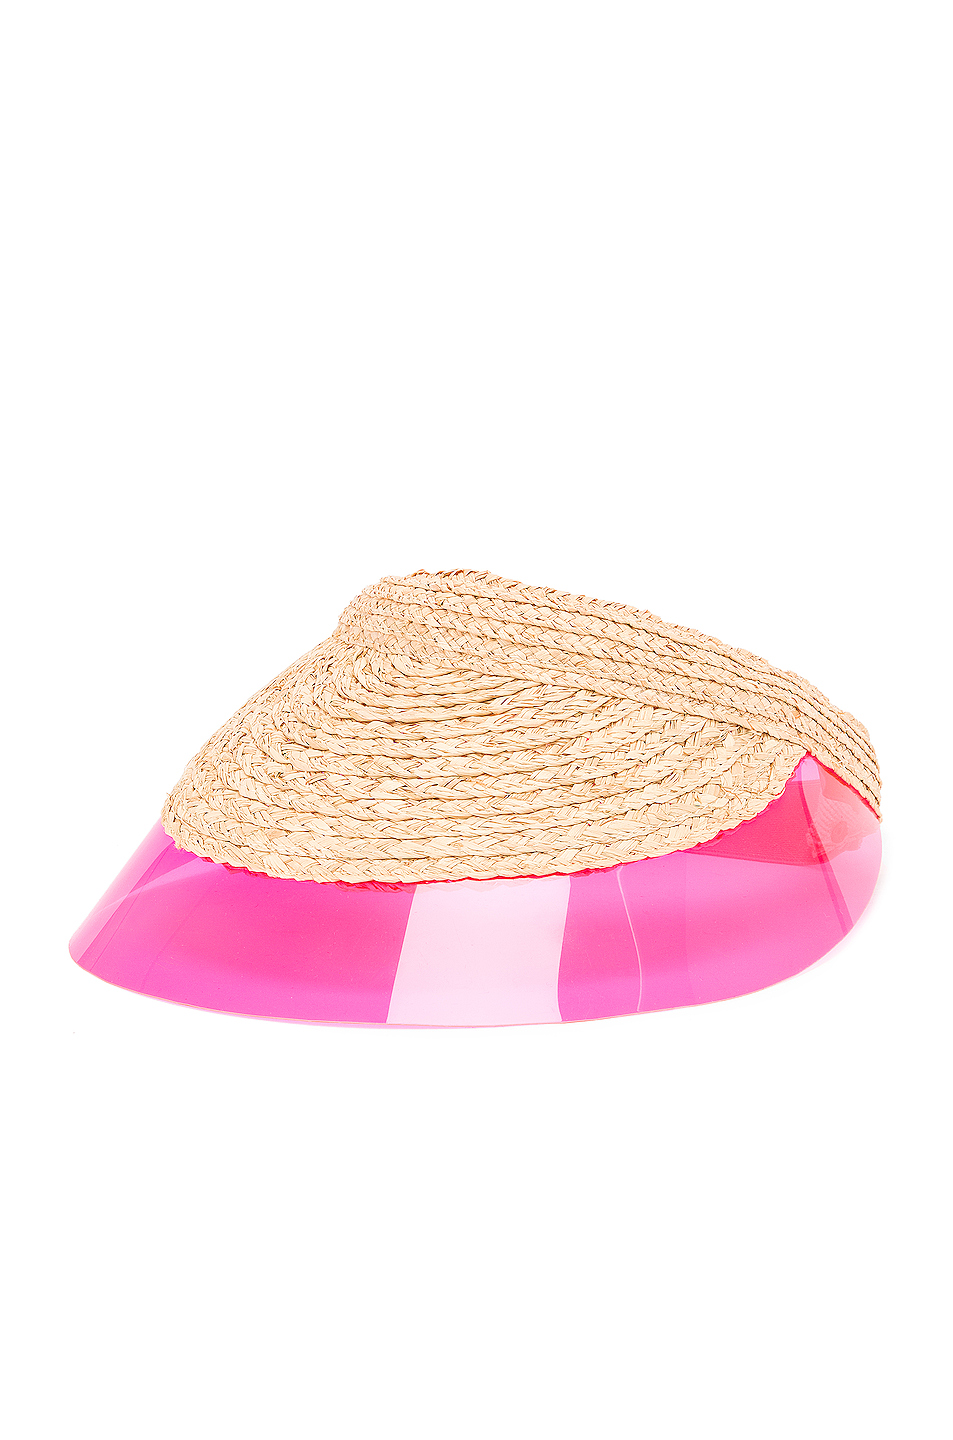 Lola Hats Billiard Visor